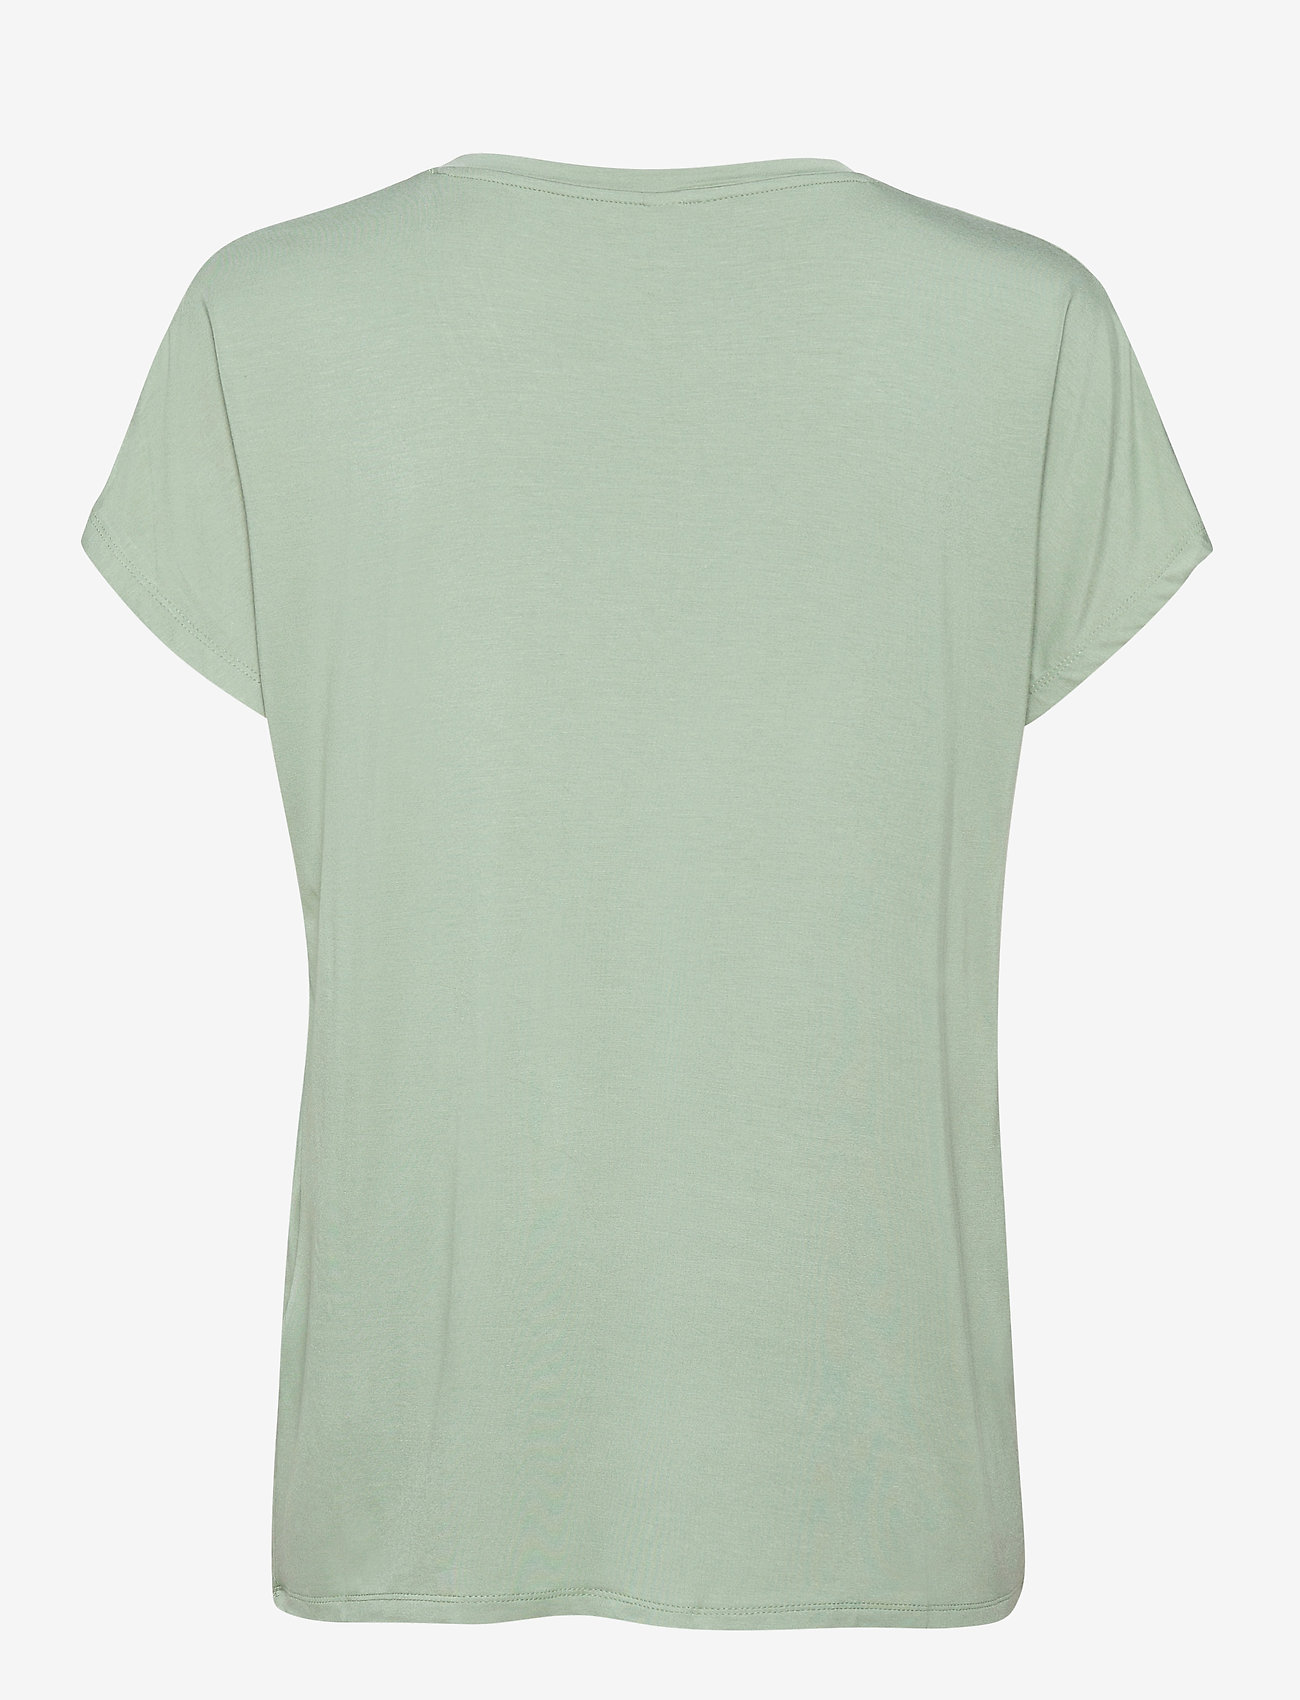 Soyaconcept - SC-MARICA - t-shirts - mineral green - 1